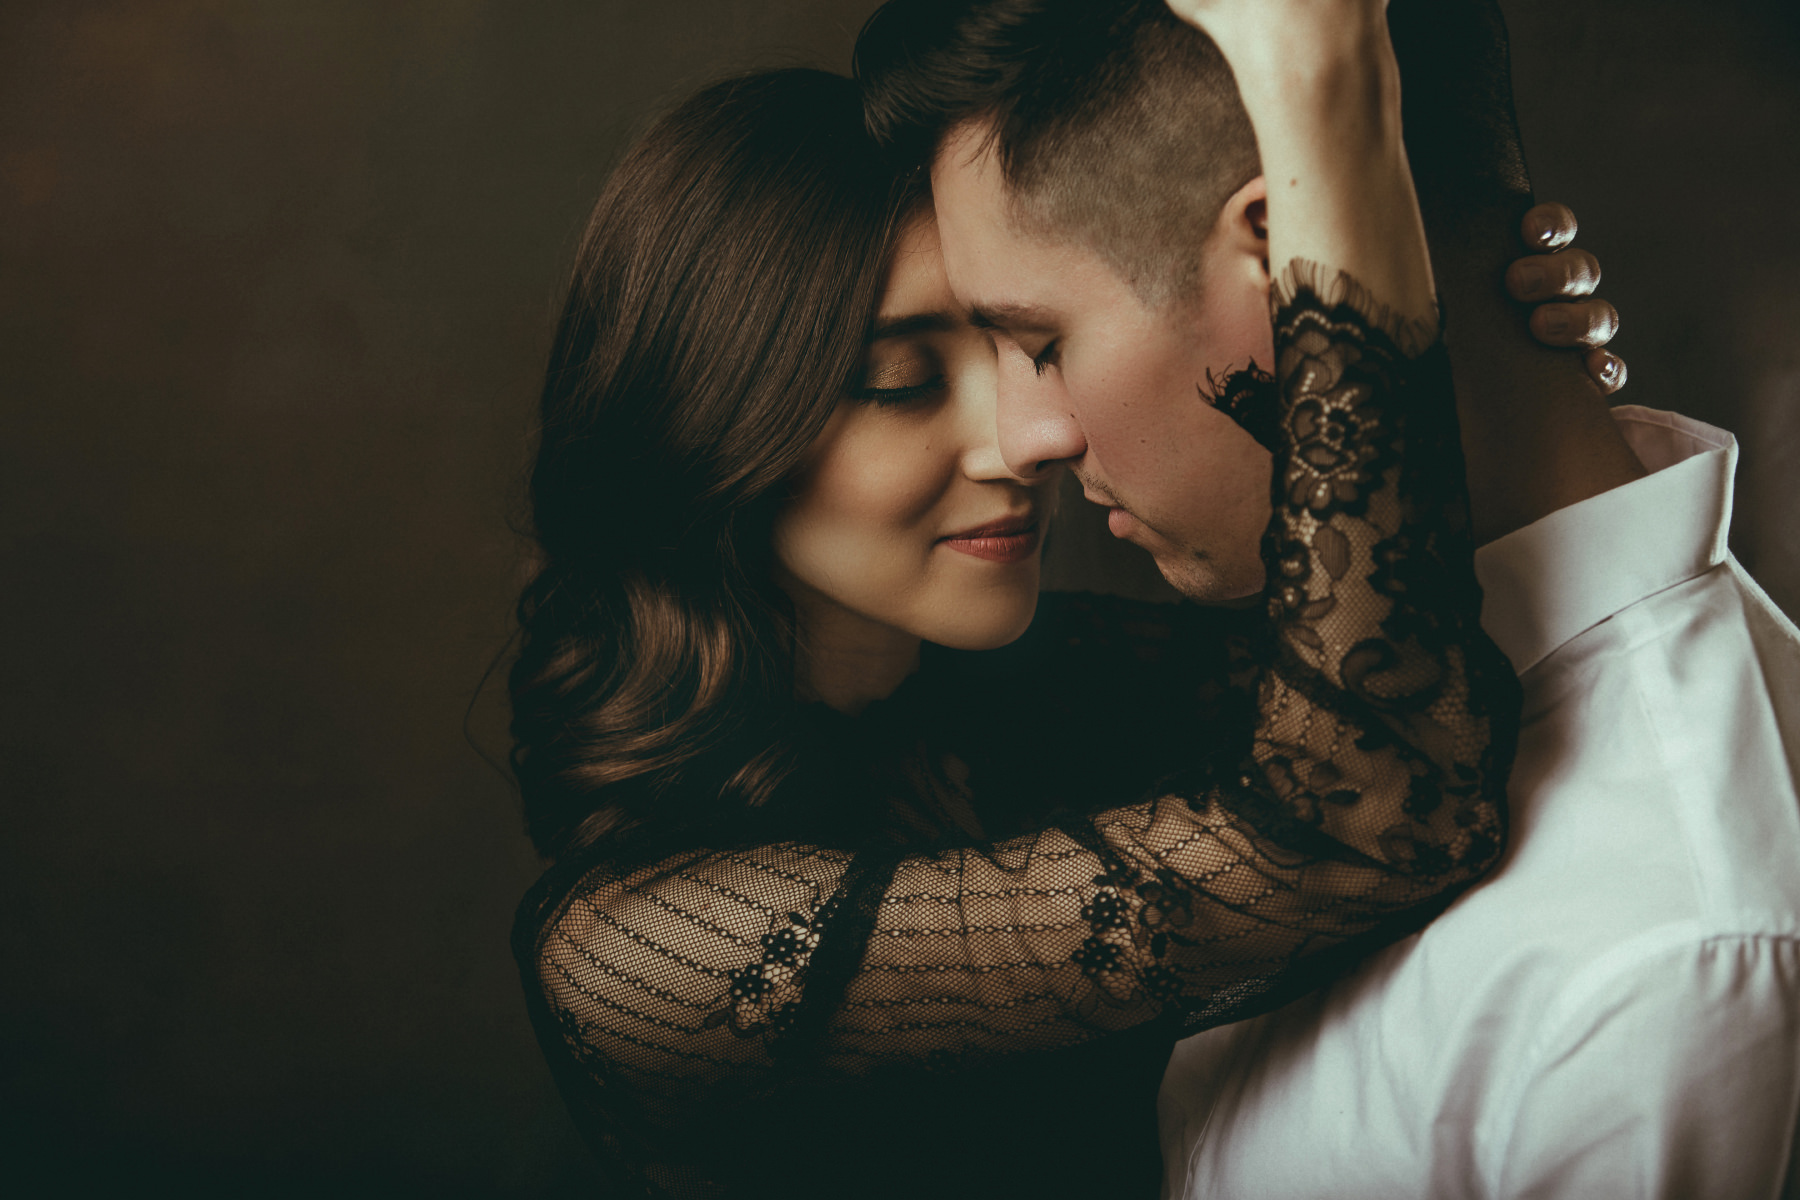 Editorial style engagement session with studio lighting